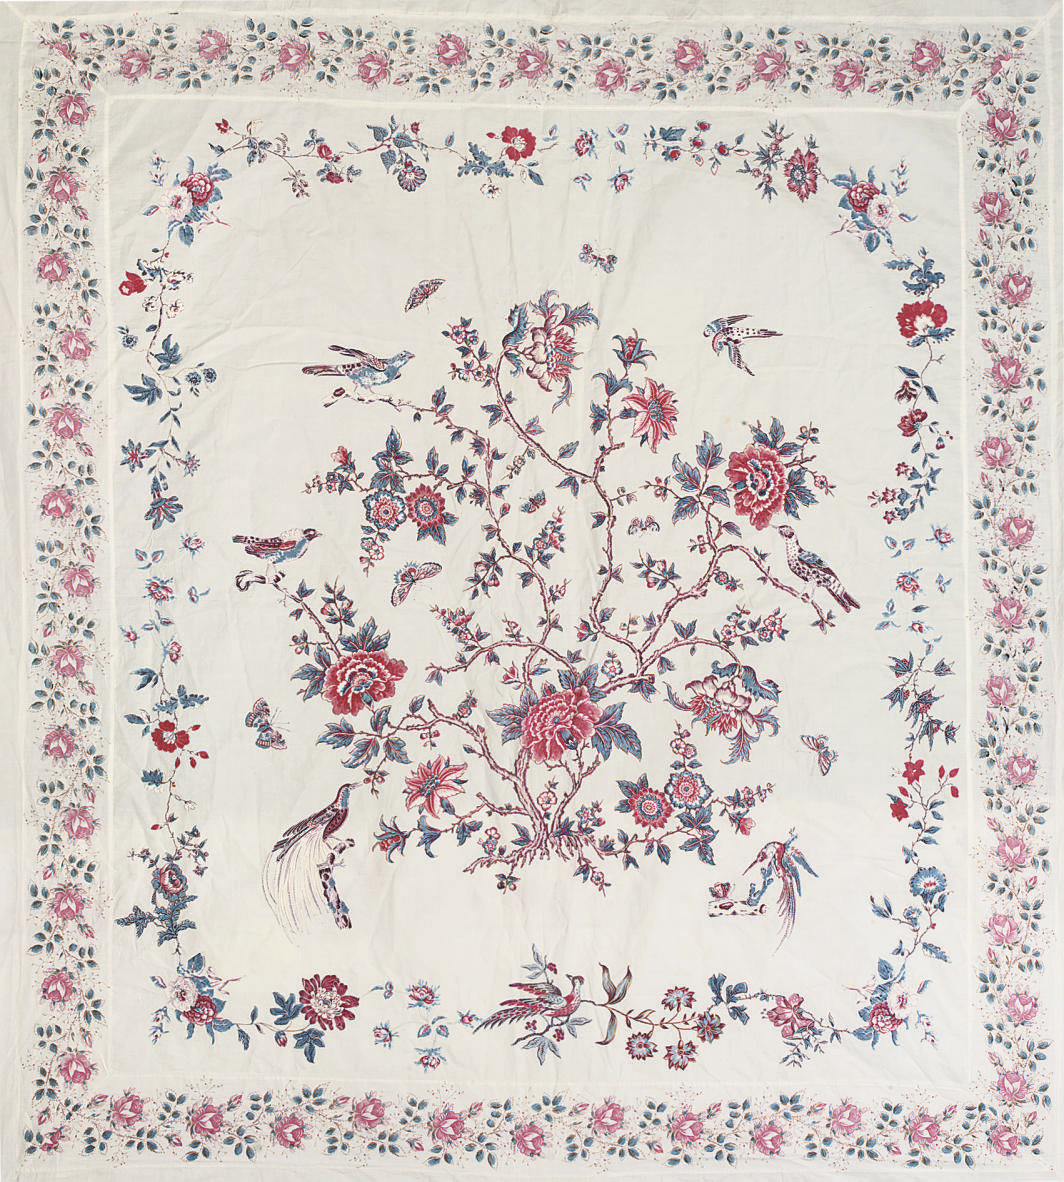 A FINE BRODERIE PERSE COVERLET